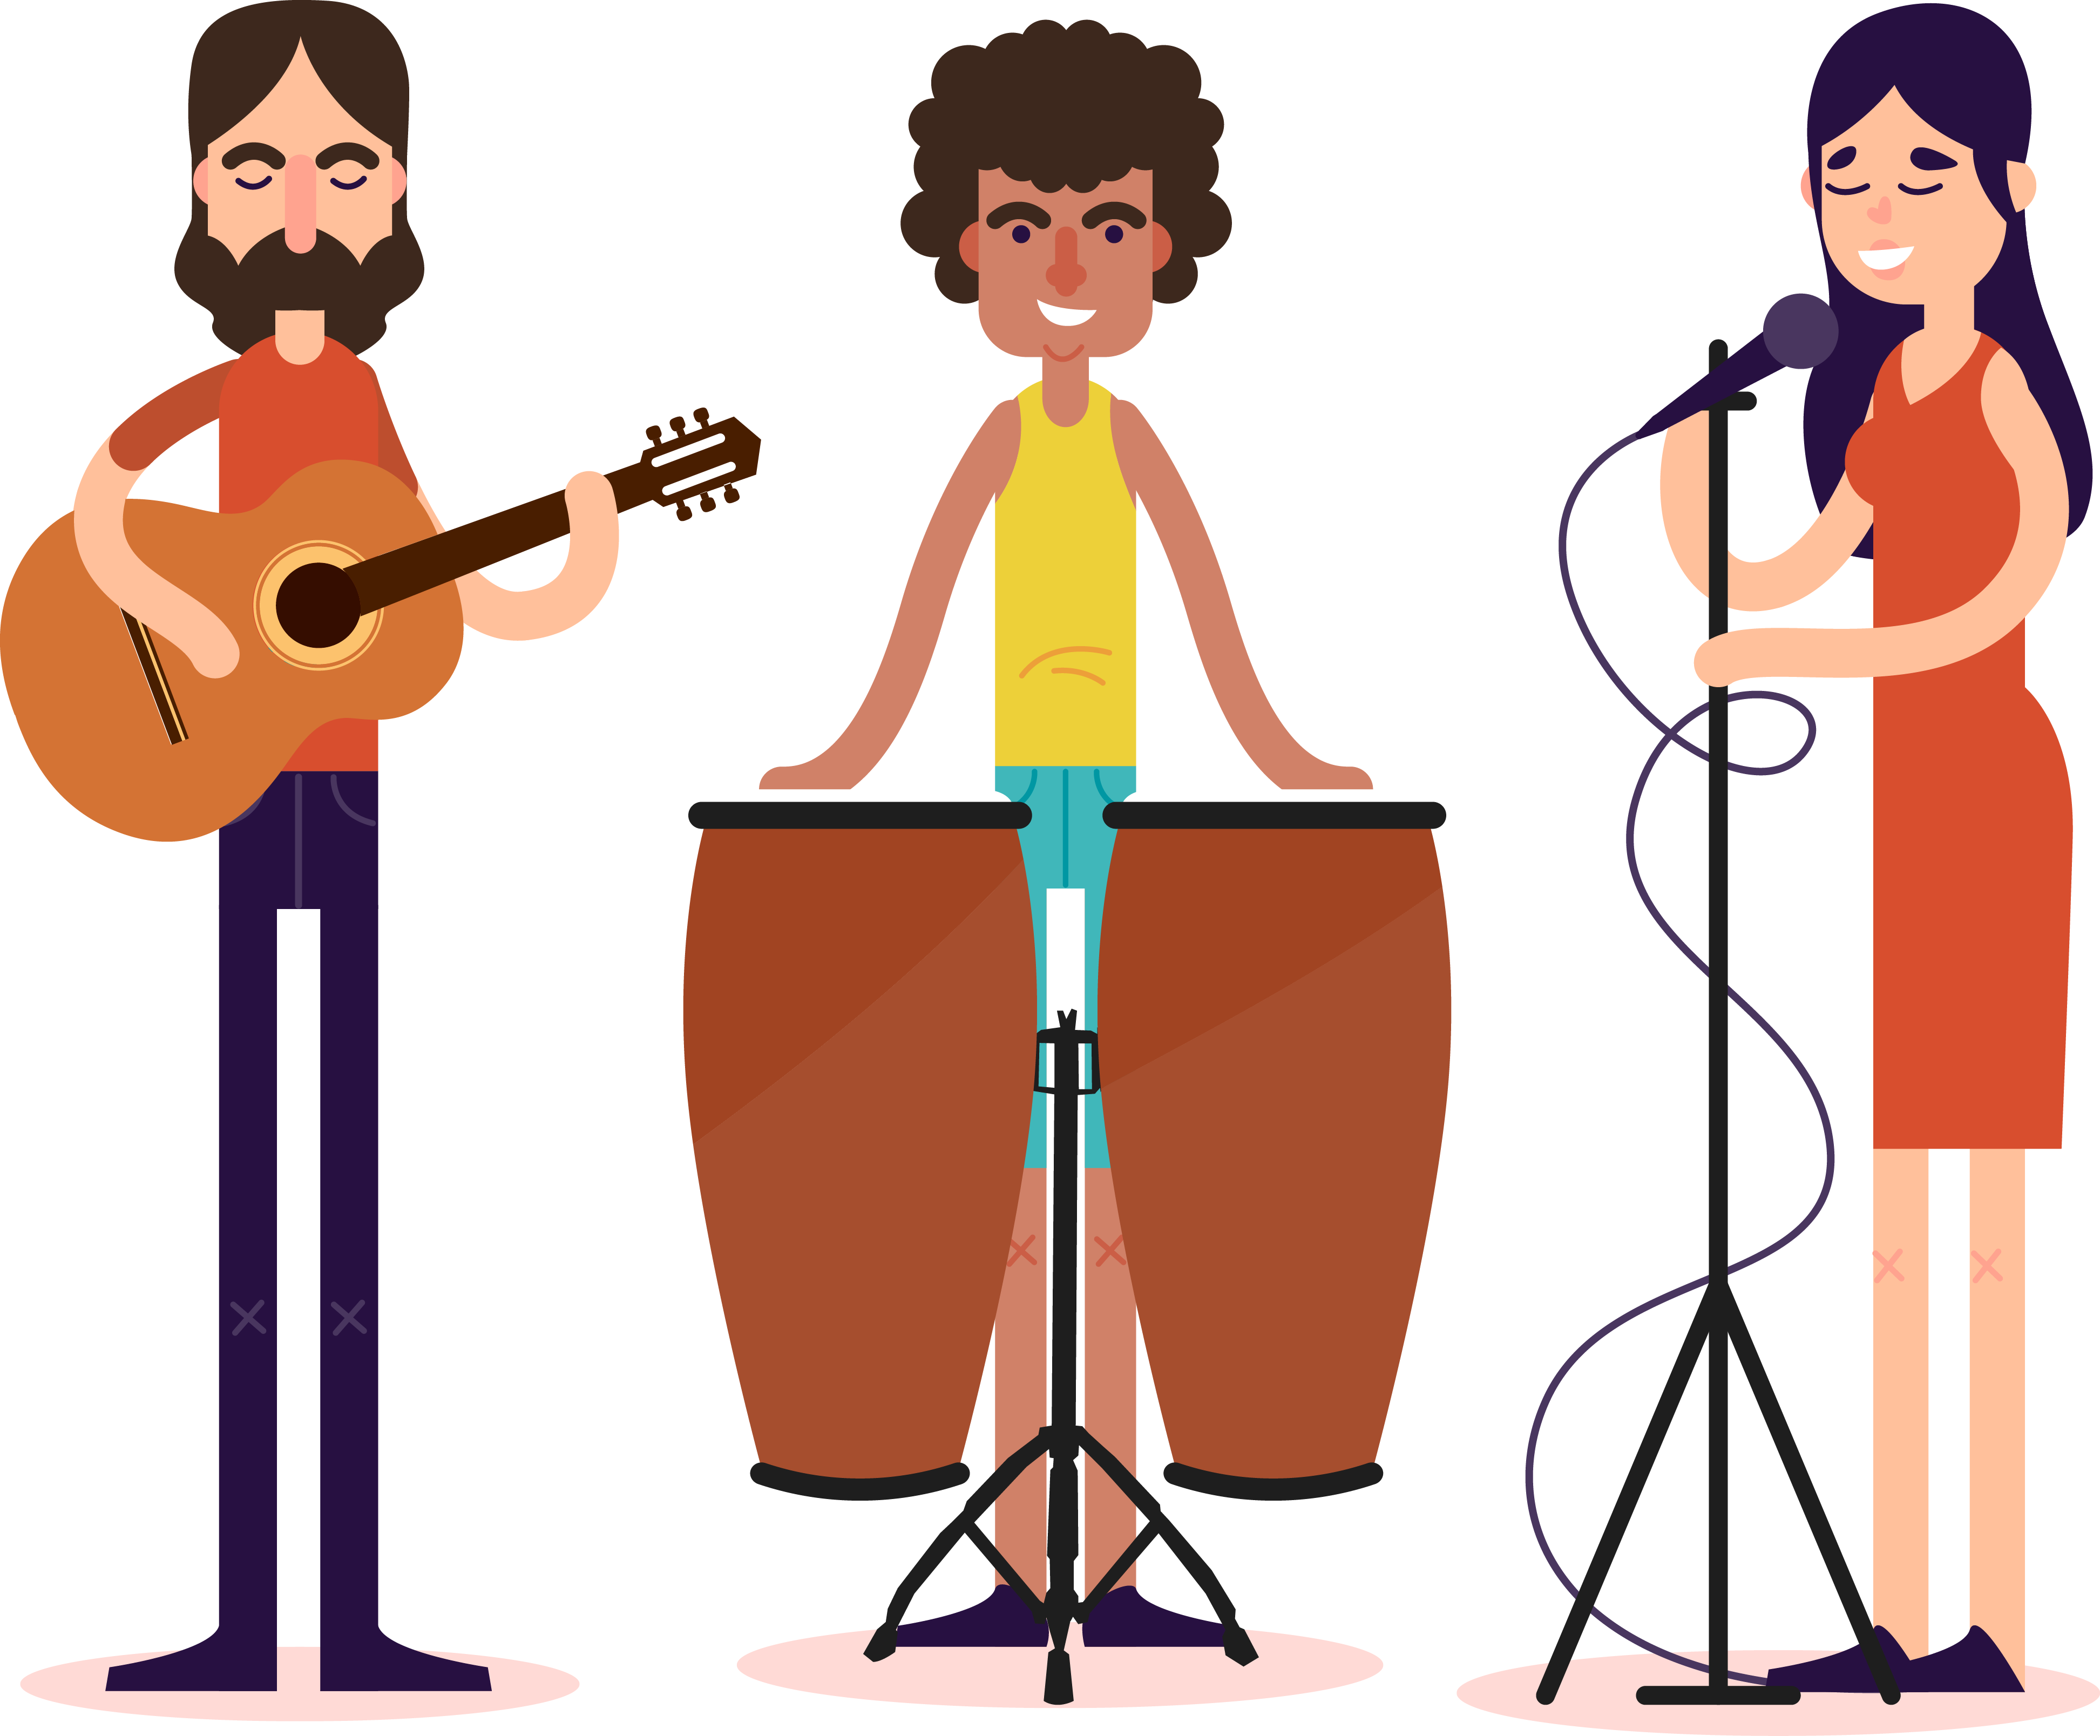 Musician clipart band member. Cliparts for free